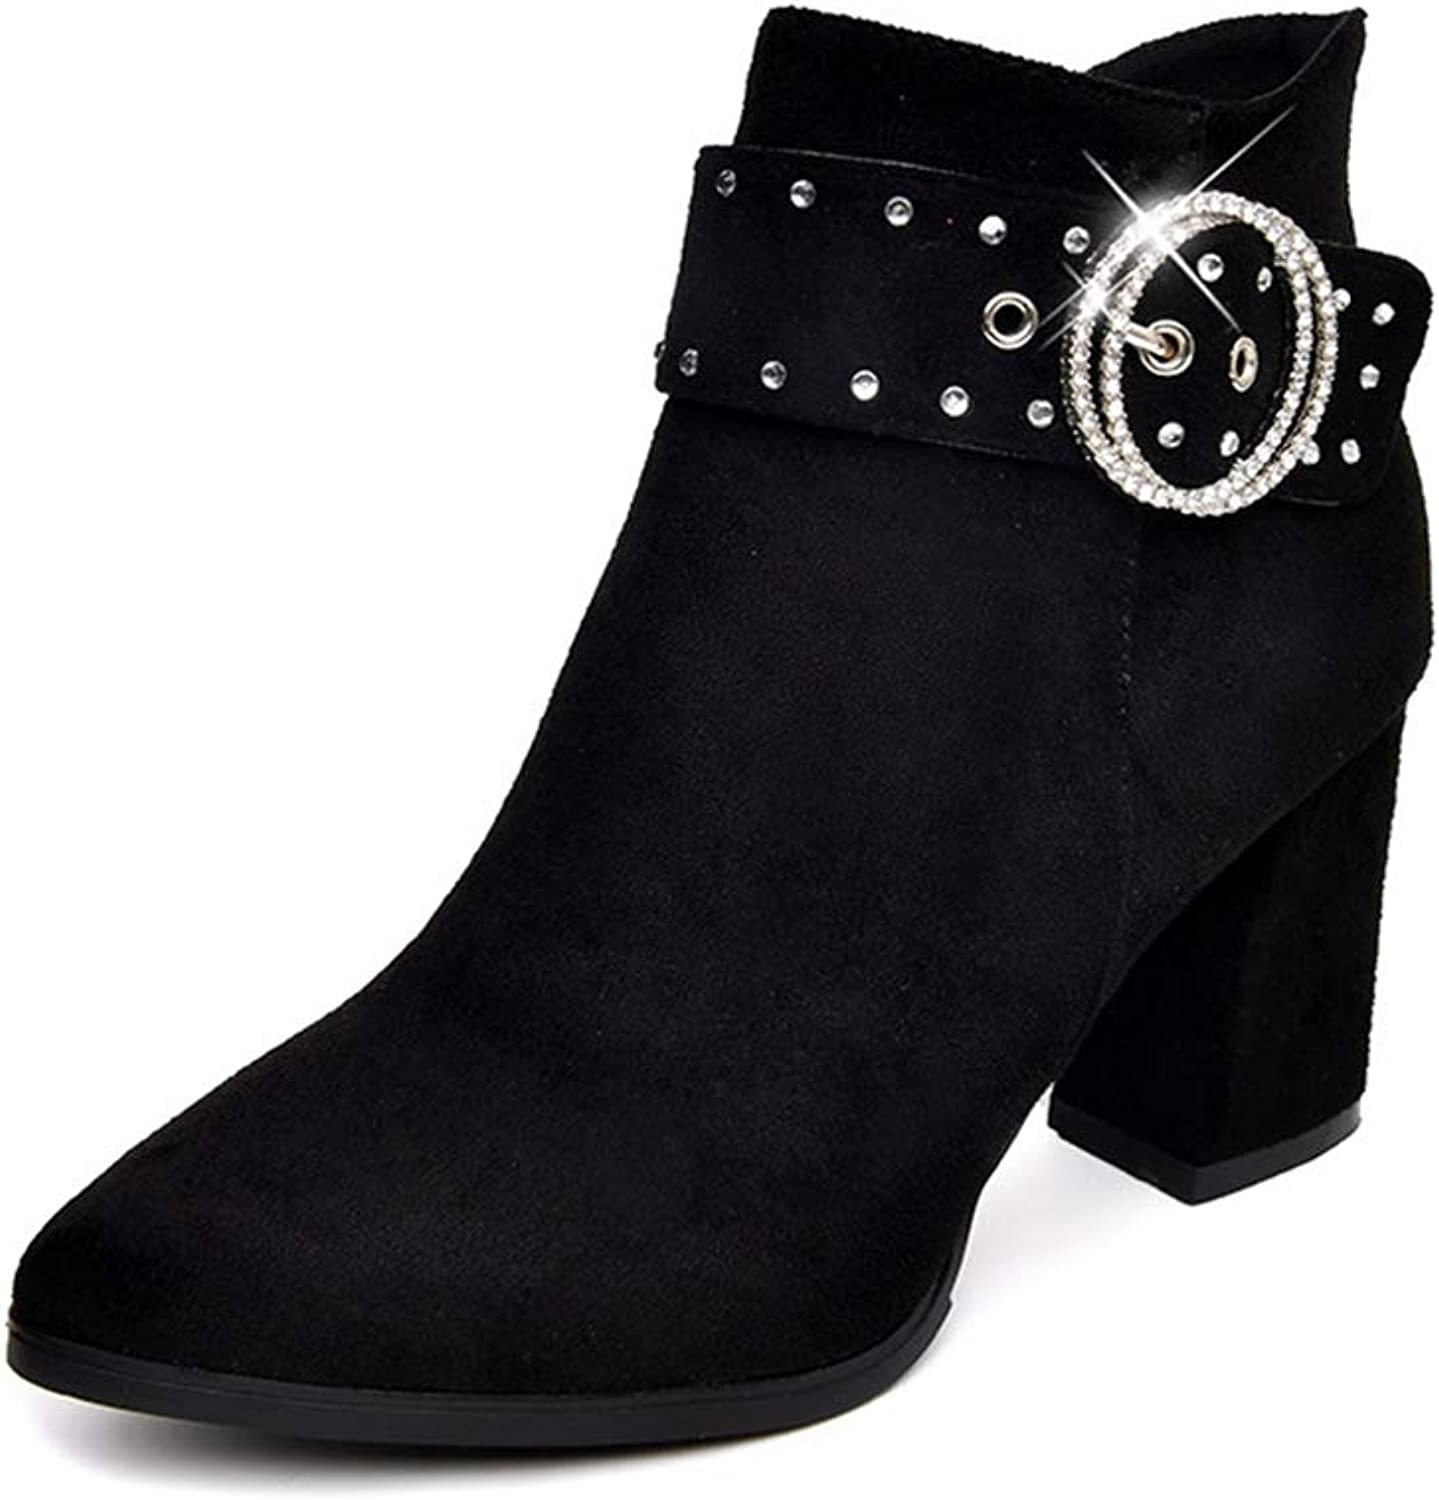 YUBUKE Women's Buckle Side Cut Out Chunky Stacked Heel Ankle Bootie